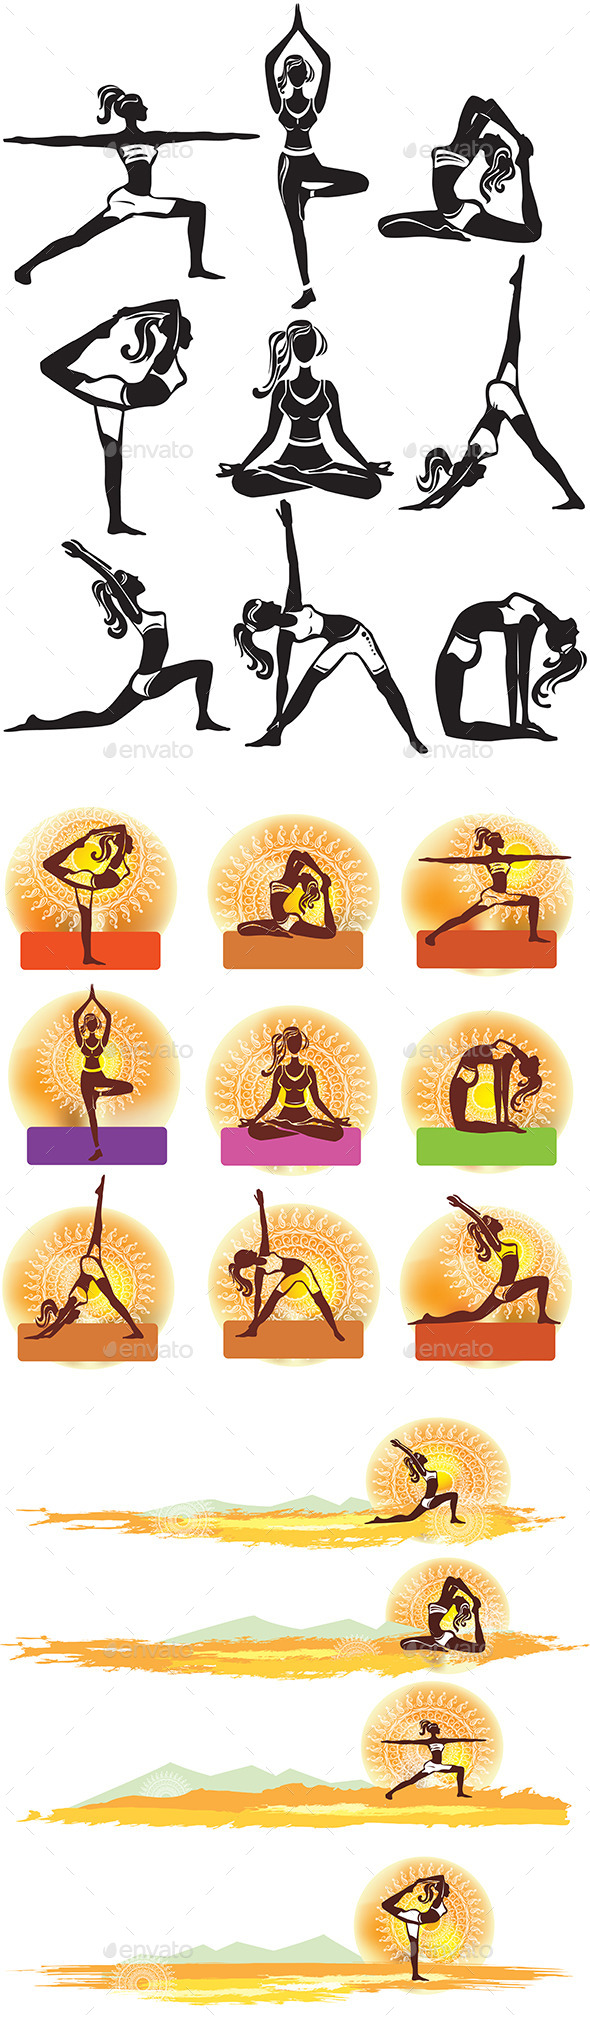 Set of Meditating and Doing Yoga Poses - People Characters